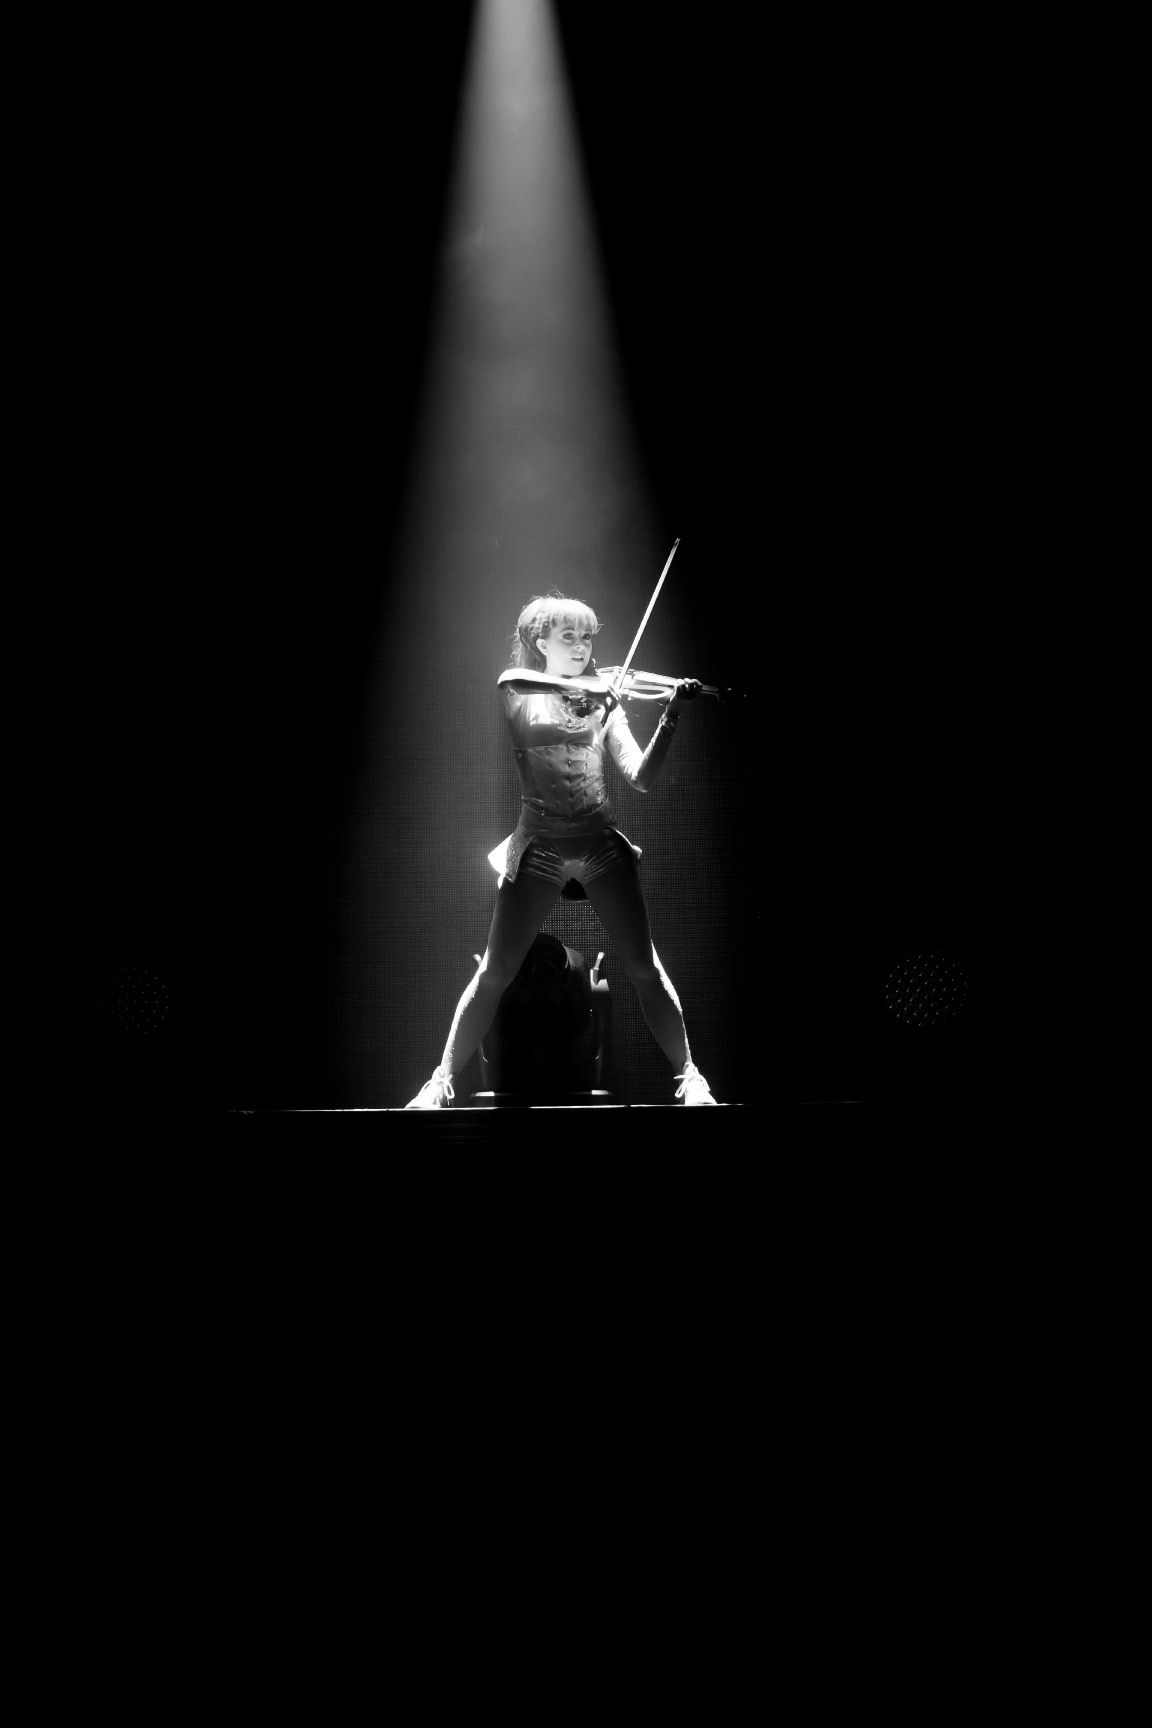 Lindsey Stirling performs at Comerica Theater in Phoenix in August 2015.| Leavitt Wells, Leave it to Leavitt Photography